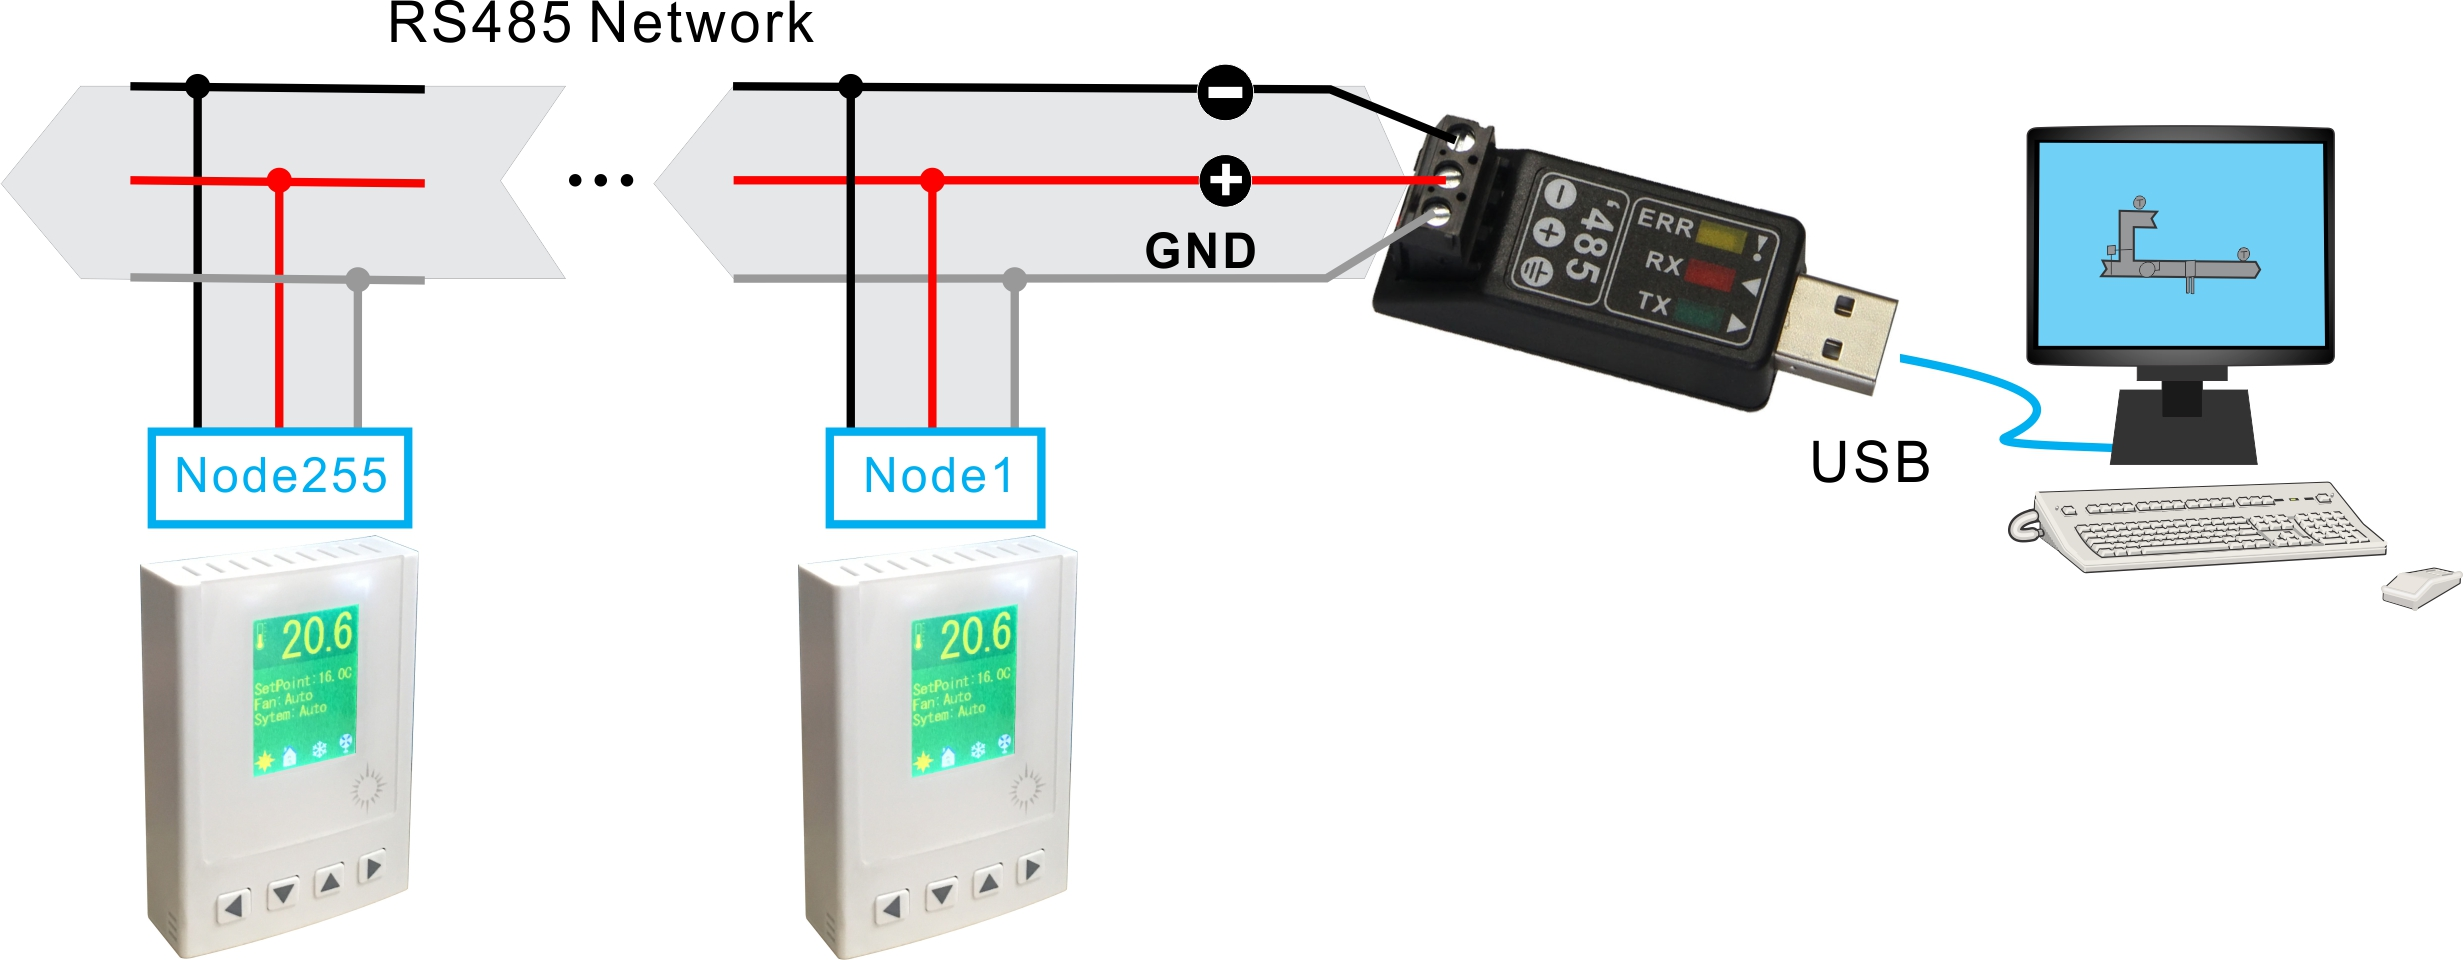 rs485 2 wire connection diagram house electricity wiring tstat8 bacnet thermostat bravo controls